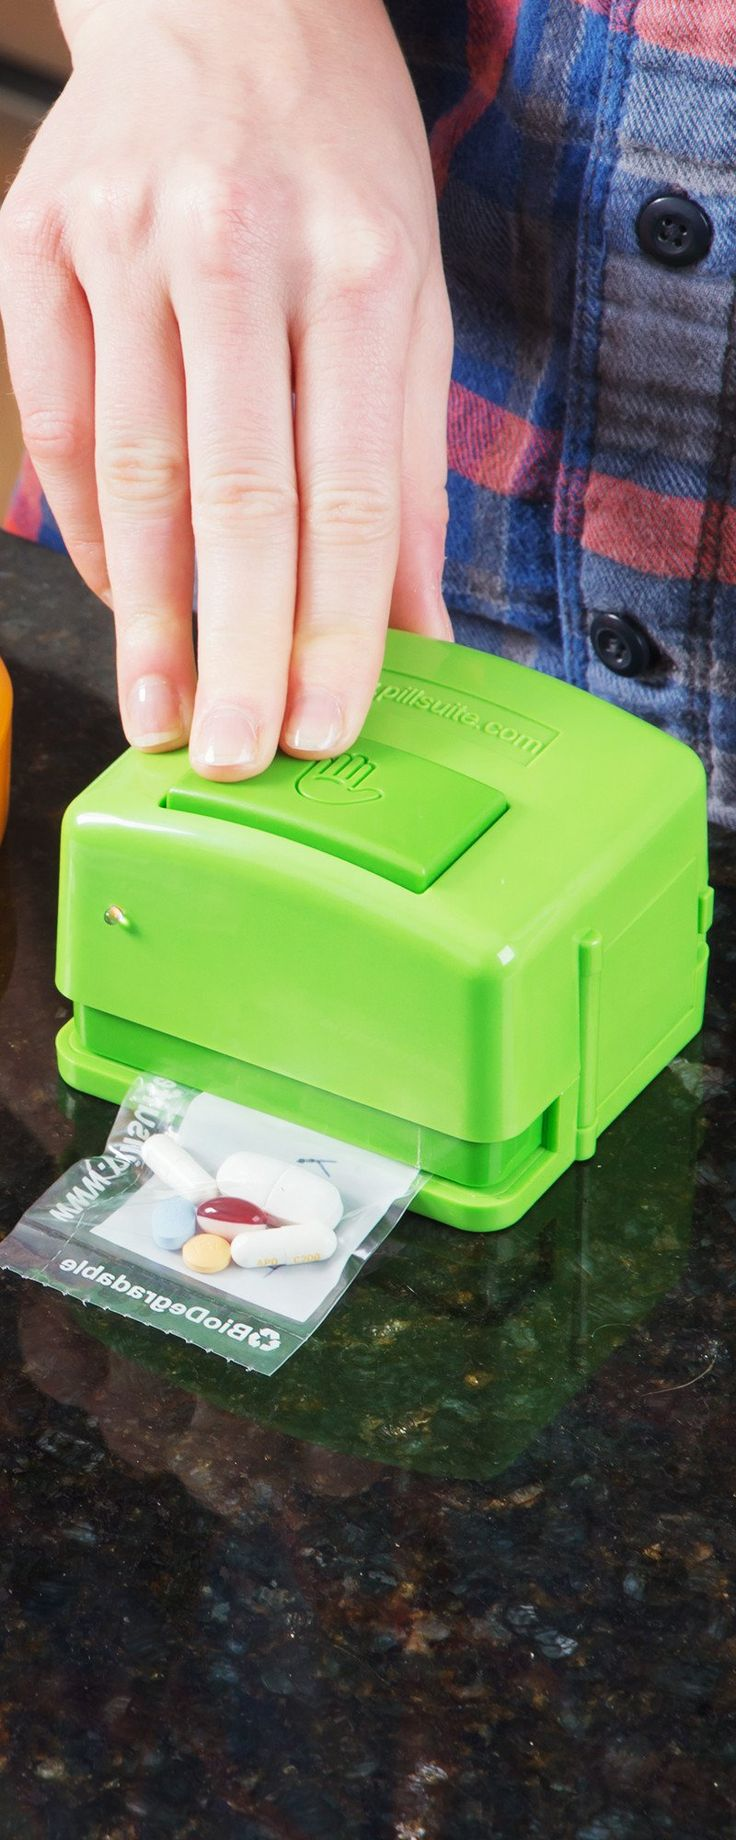 PillSuite's personal pill pack system, discovered by The Grommet, allows you to sort and seal your meds into individual baggies to easily take on the go.